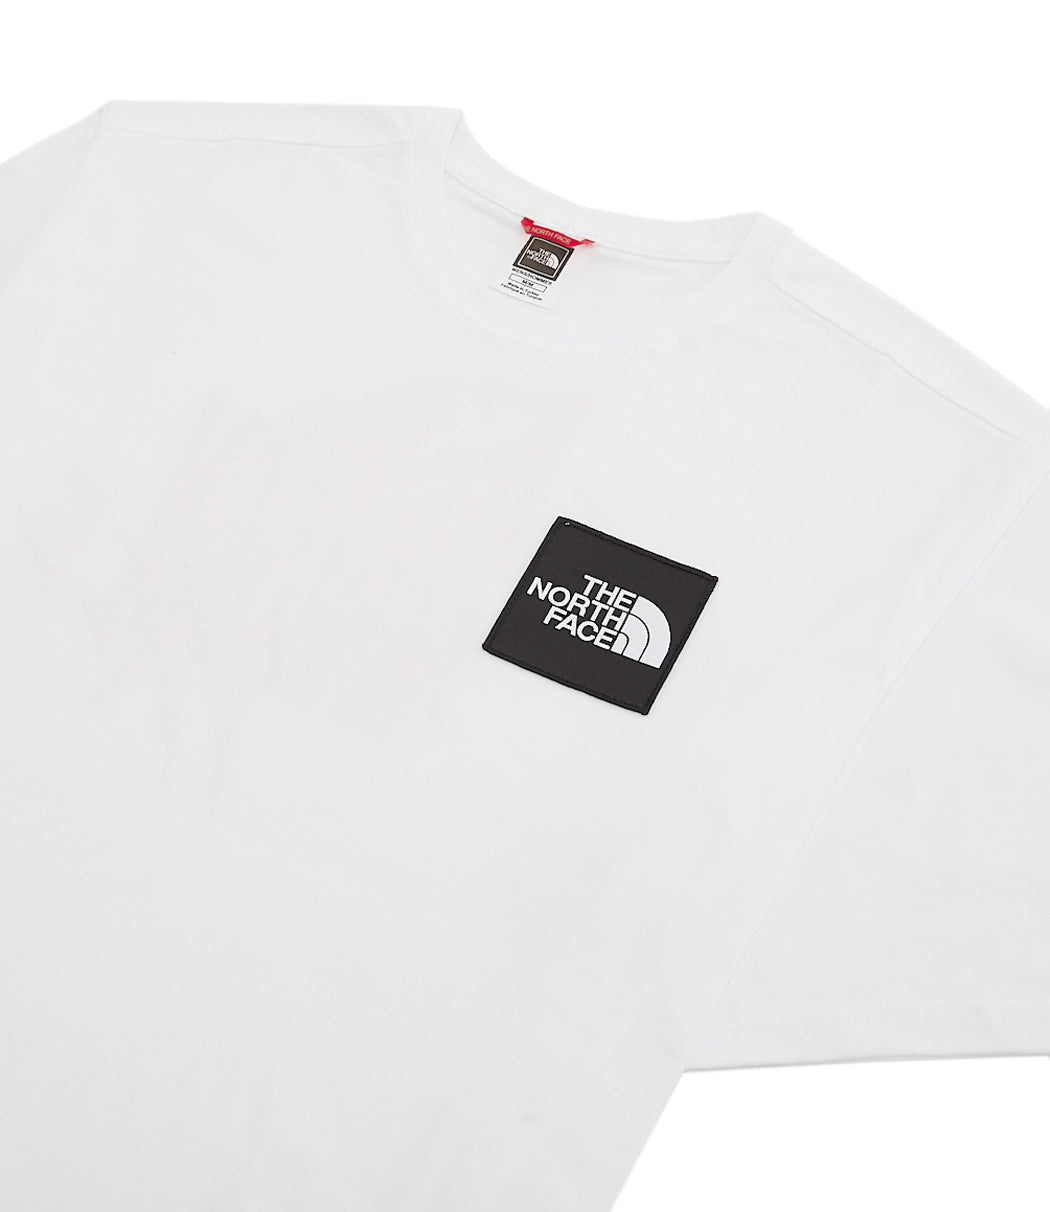 THE NORTH FACE M MOSS TEE